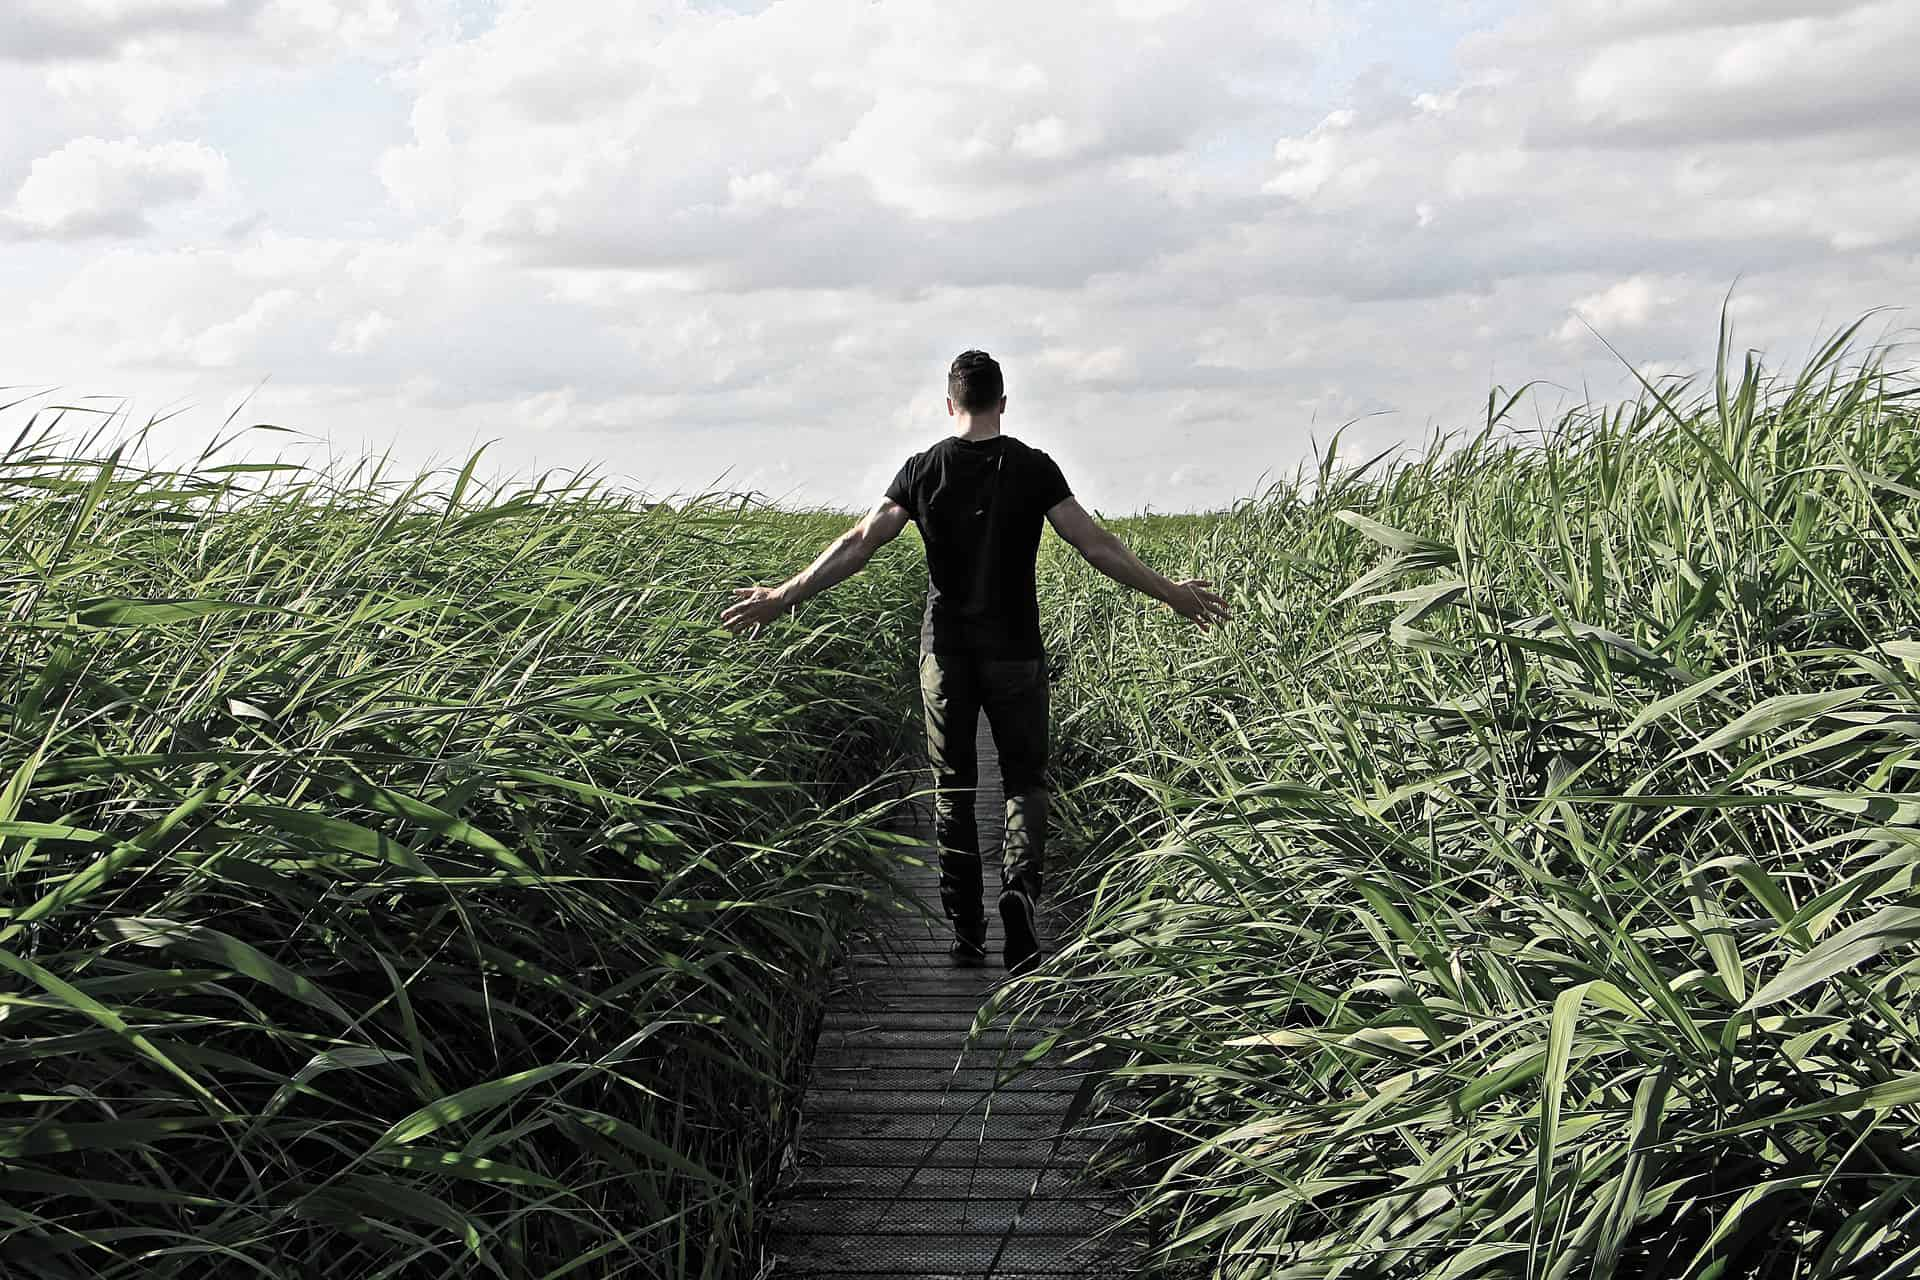 This man can walk through the tall grass free from worry because o CASAC and addictions counslor Online training and renewal